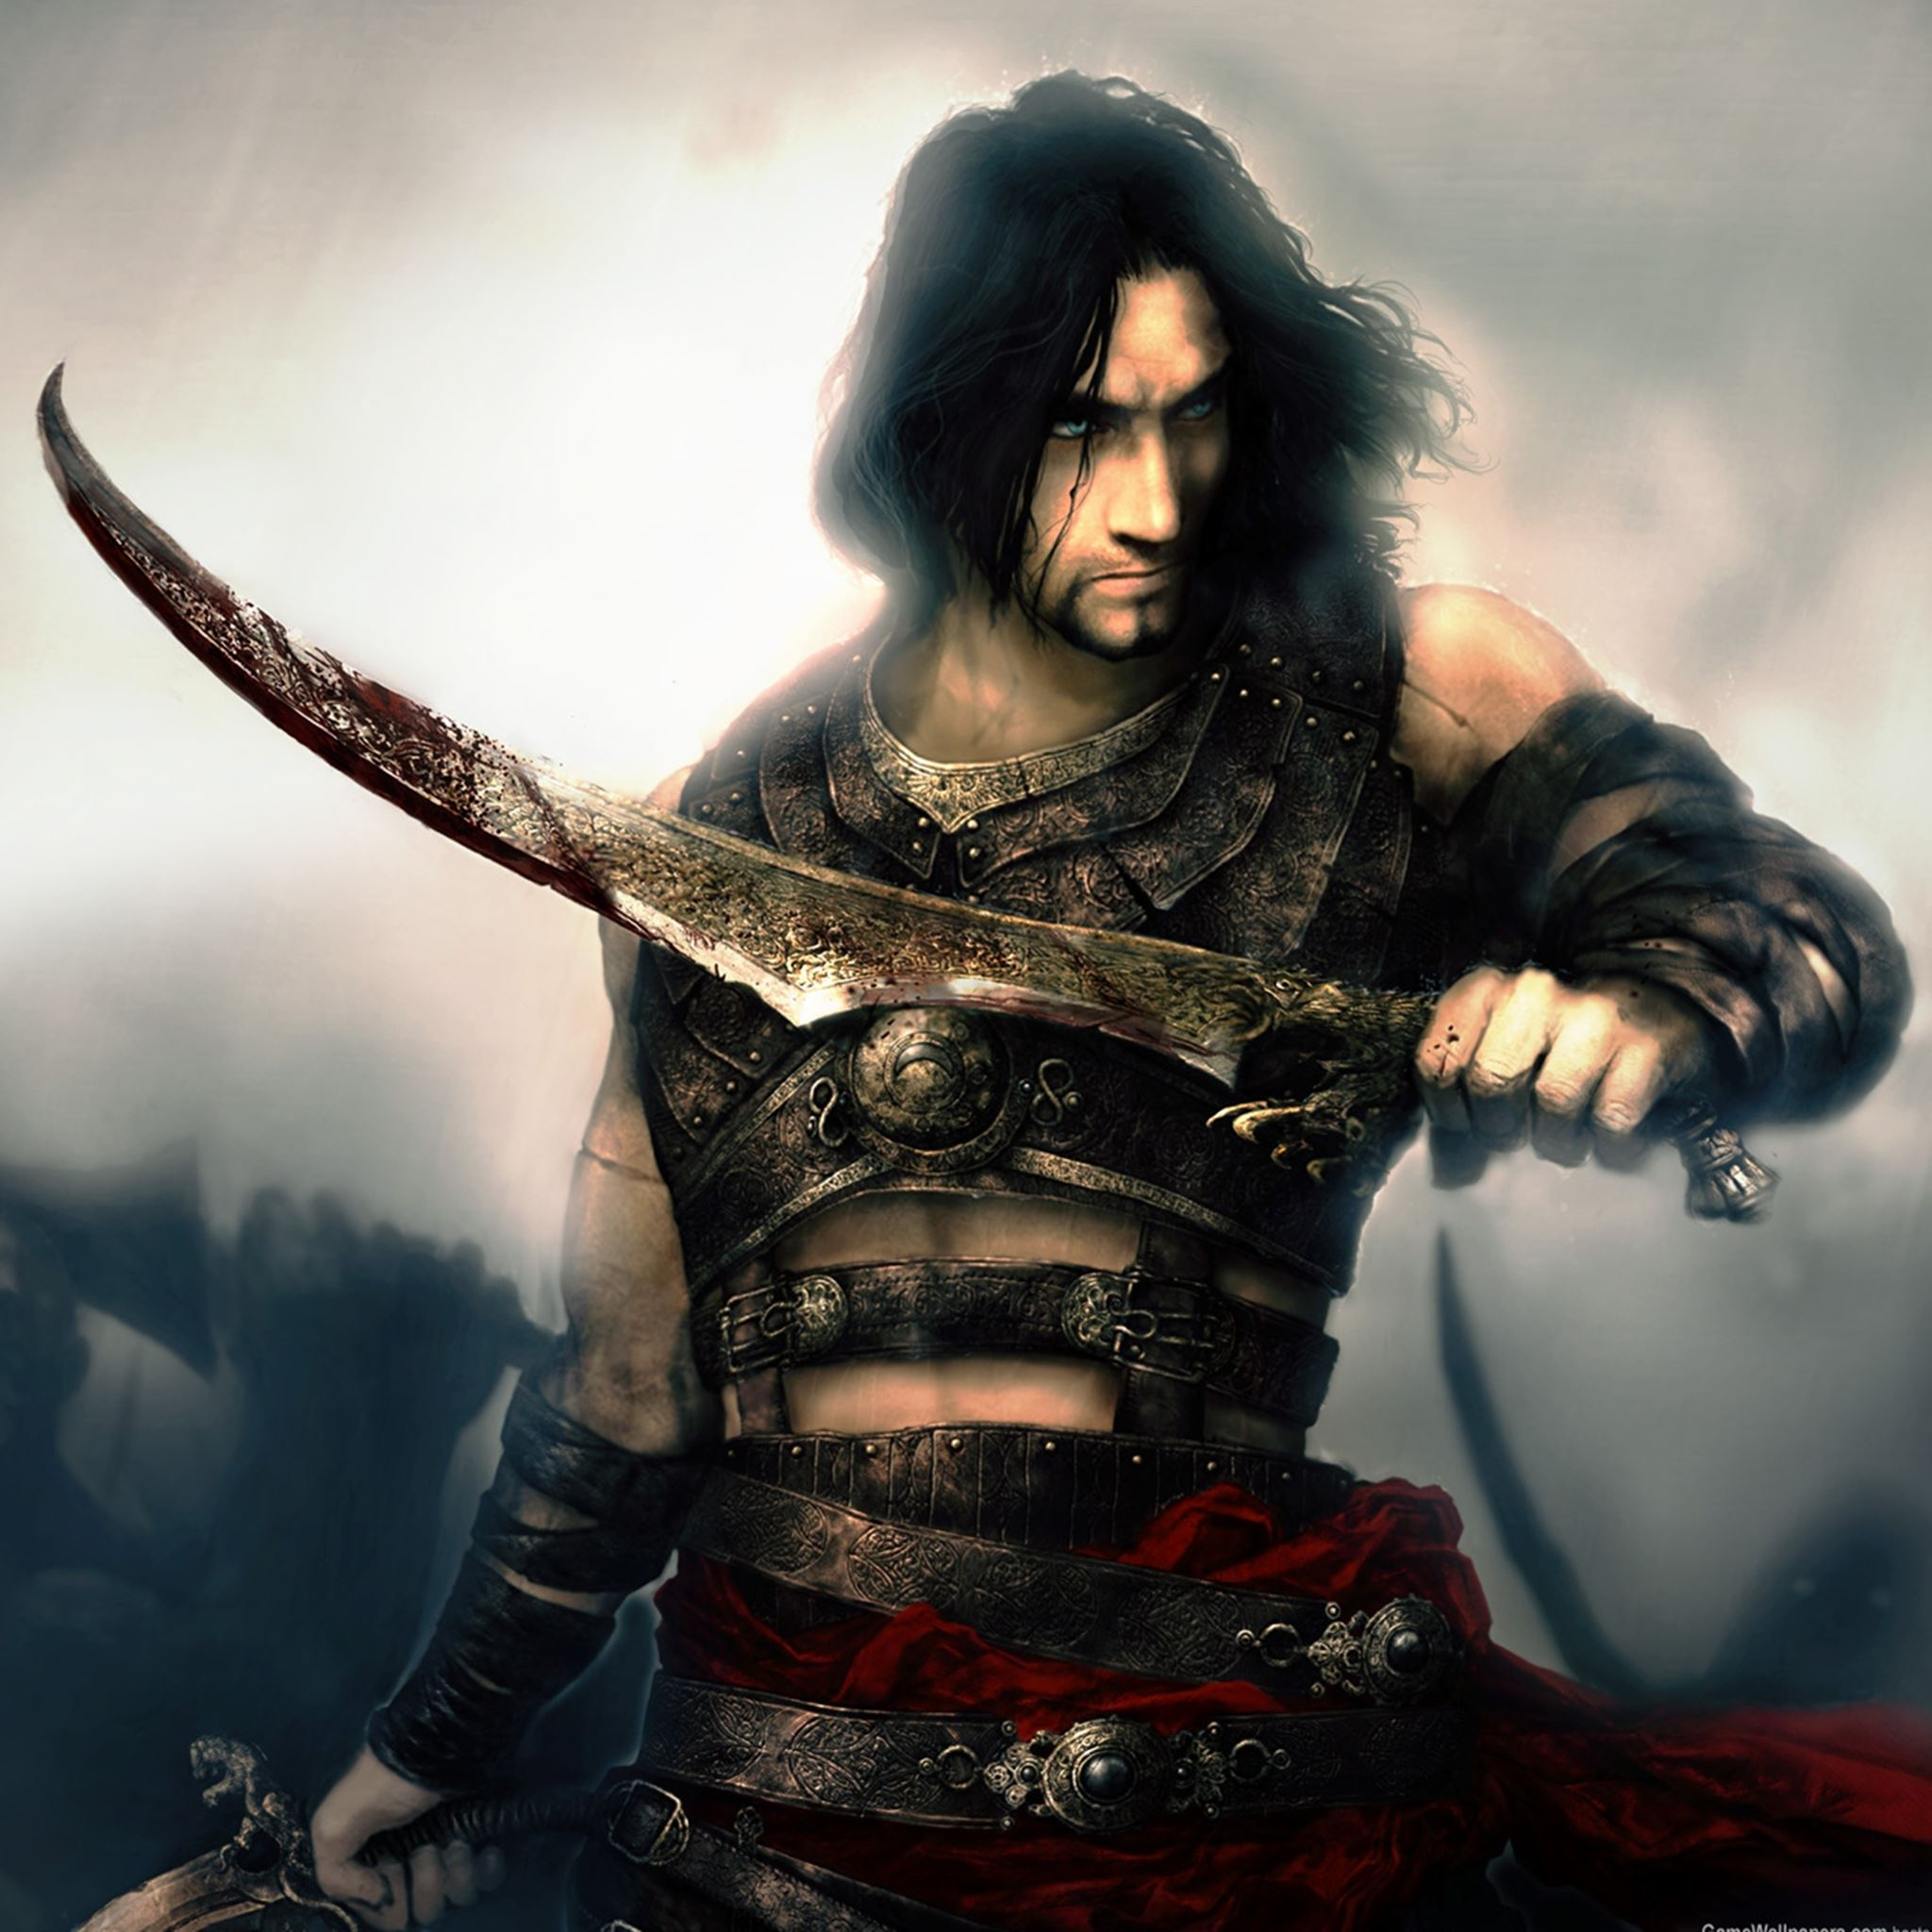 Wallpaper Prince of Persia The Sands of Time Prince of Persia